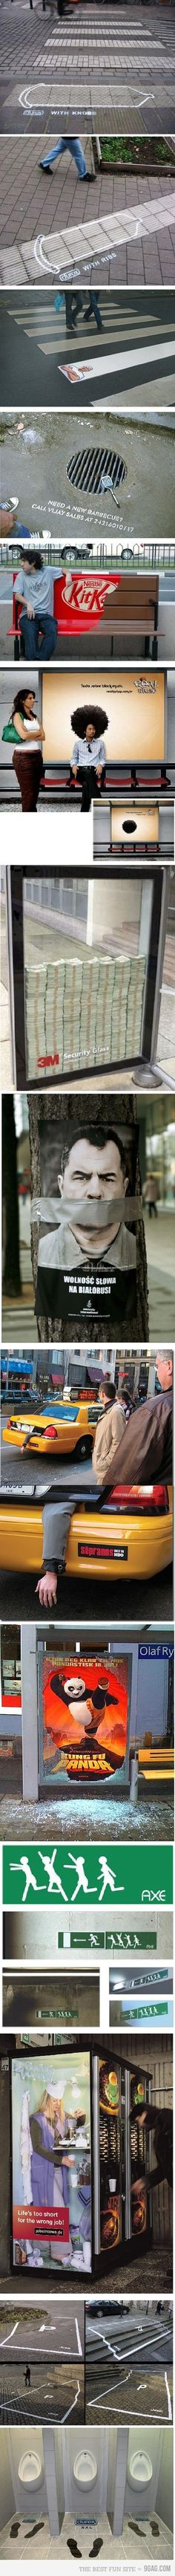 Makes me thing of English class. Marketing - Guerilla style